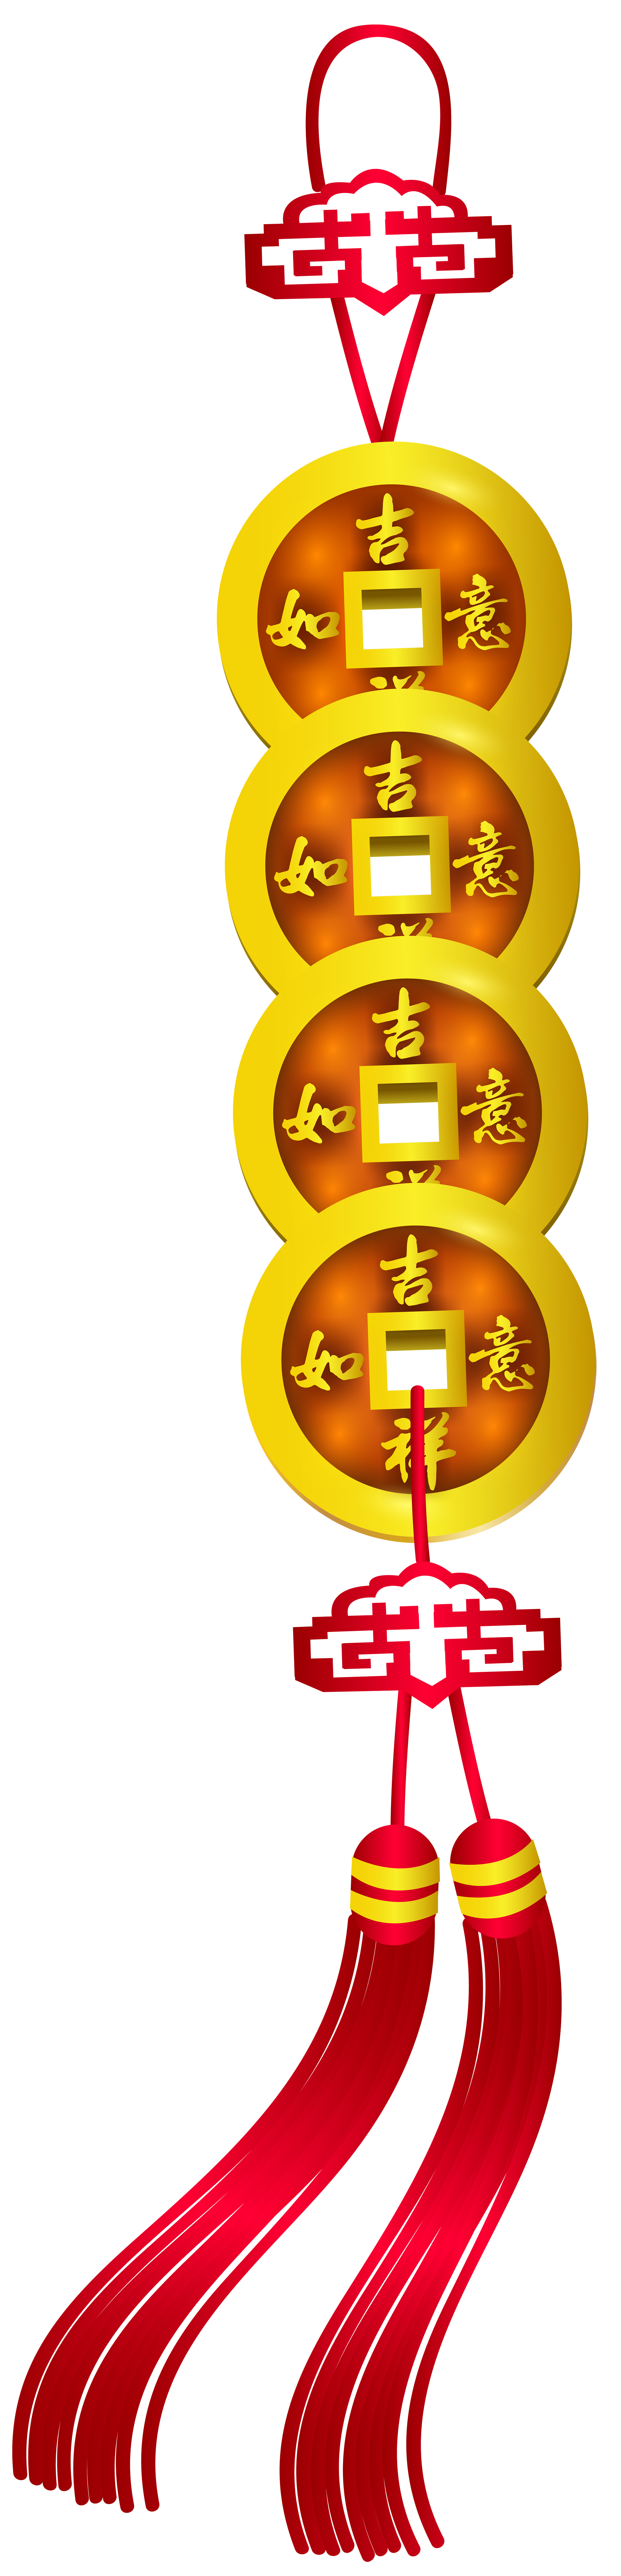 Ornament transparent chinese new year. Decoration png clip art